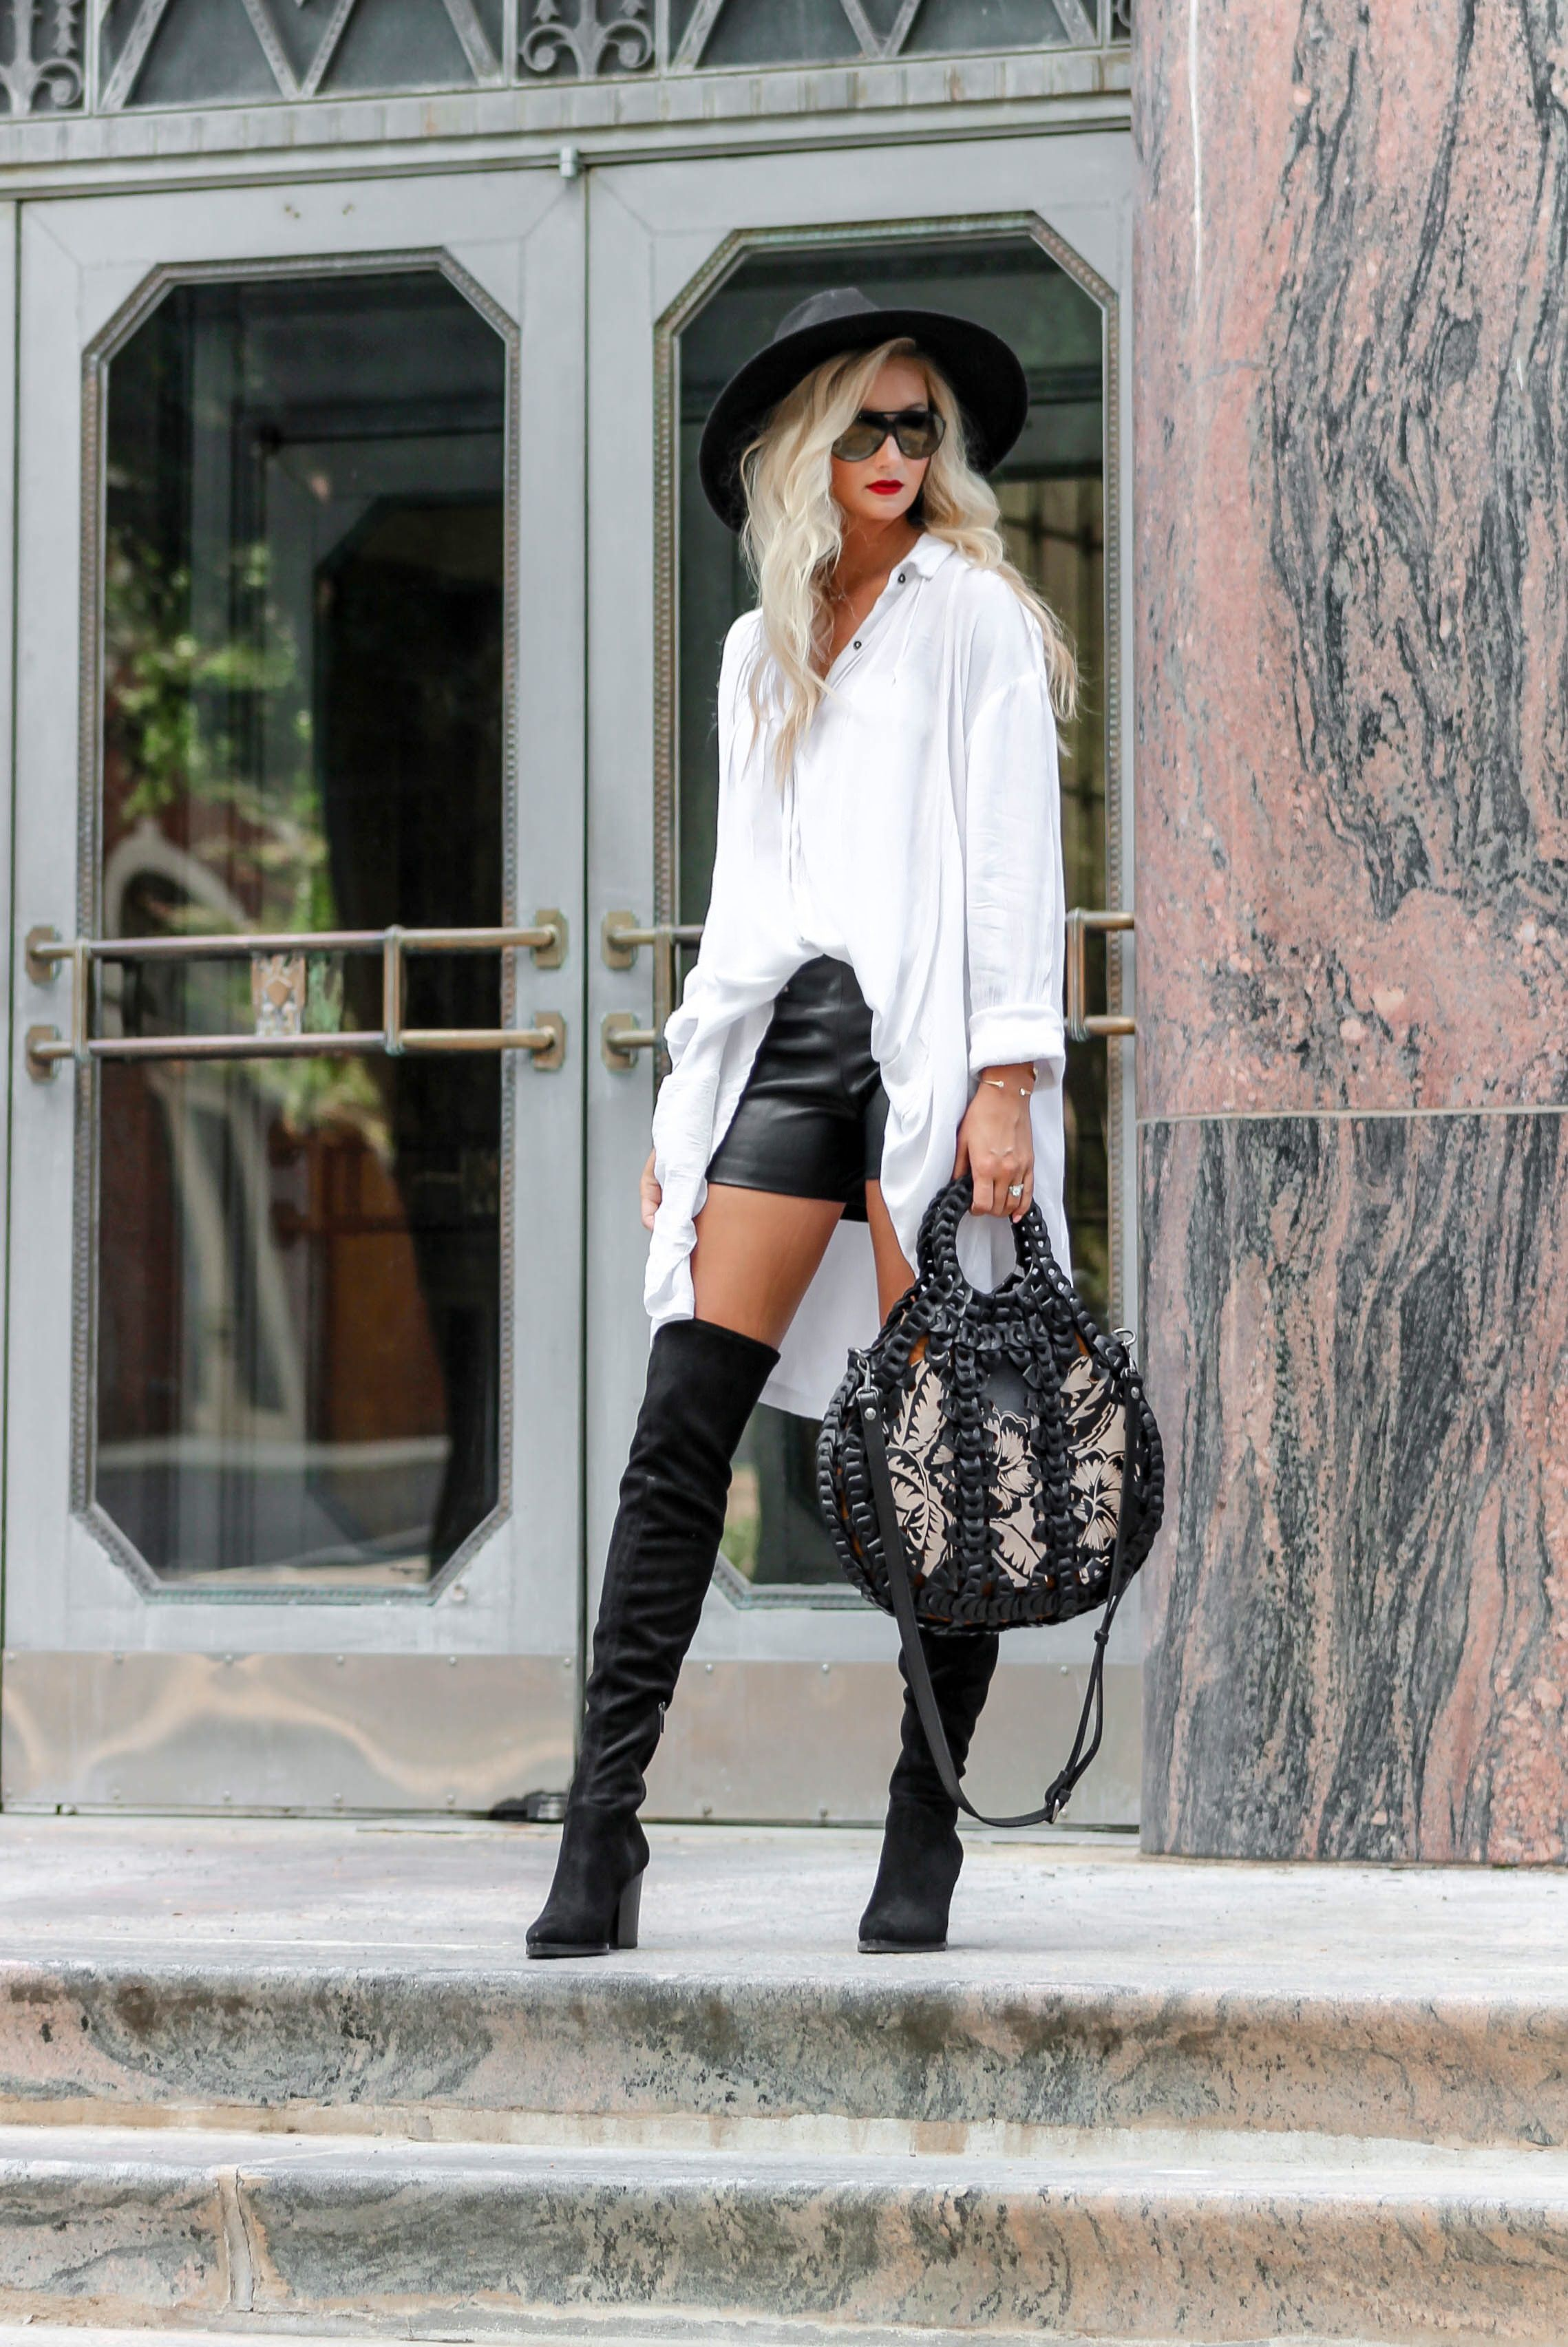 Fall Fashion And Style Autumn Leopard Print Black And White Style B W Outfits White Dresses Chic Outfits Edgy Edgy Fashion Chic Fall Fashion Outfits [ 3410 x 2278 Pixel ]